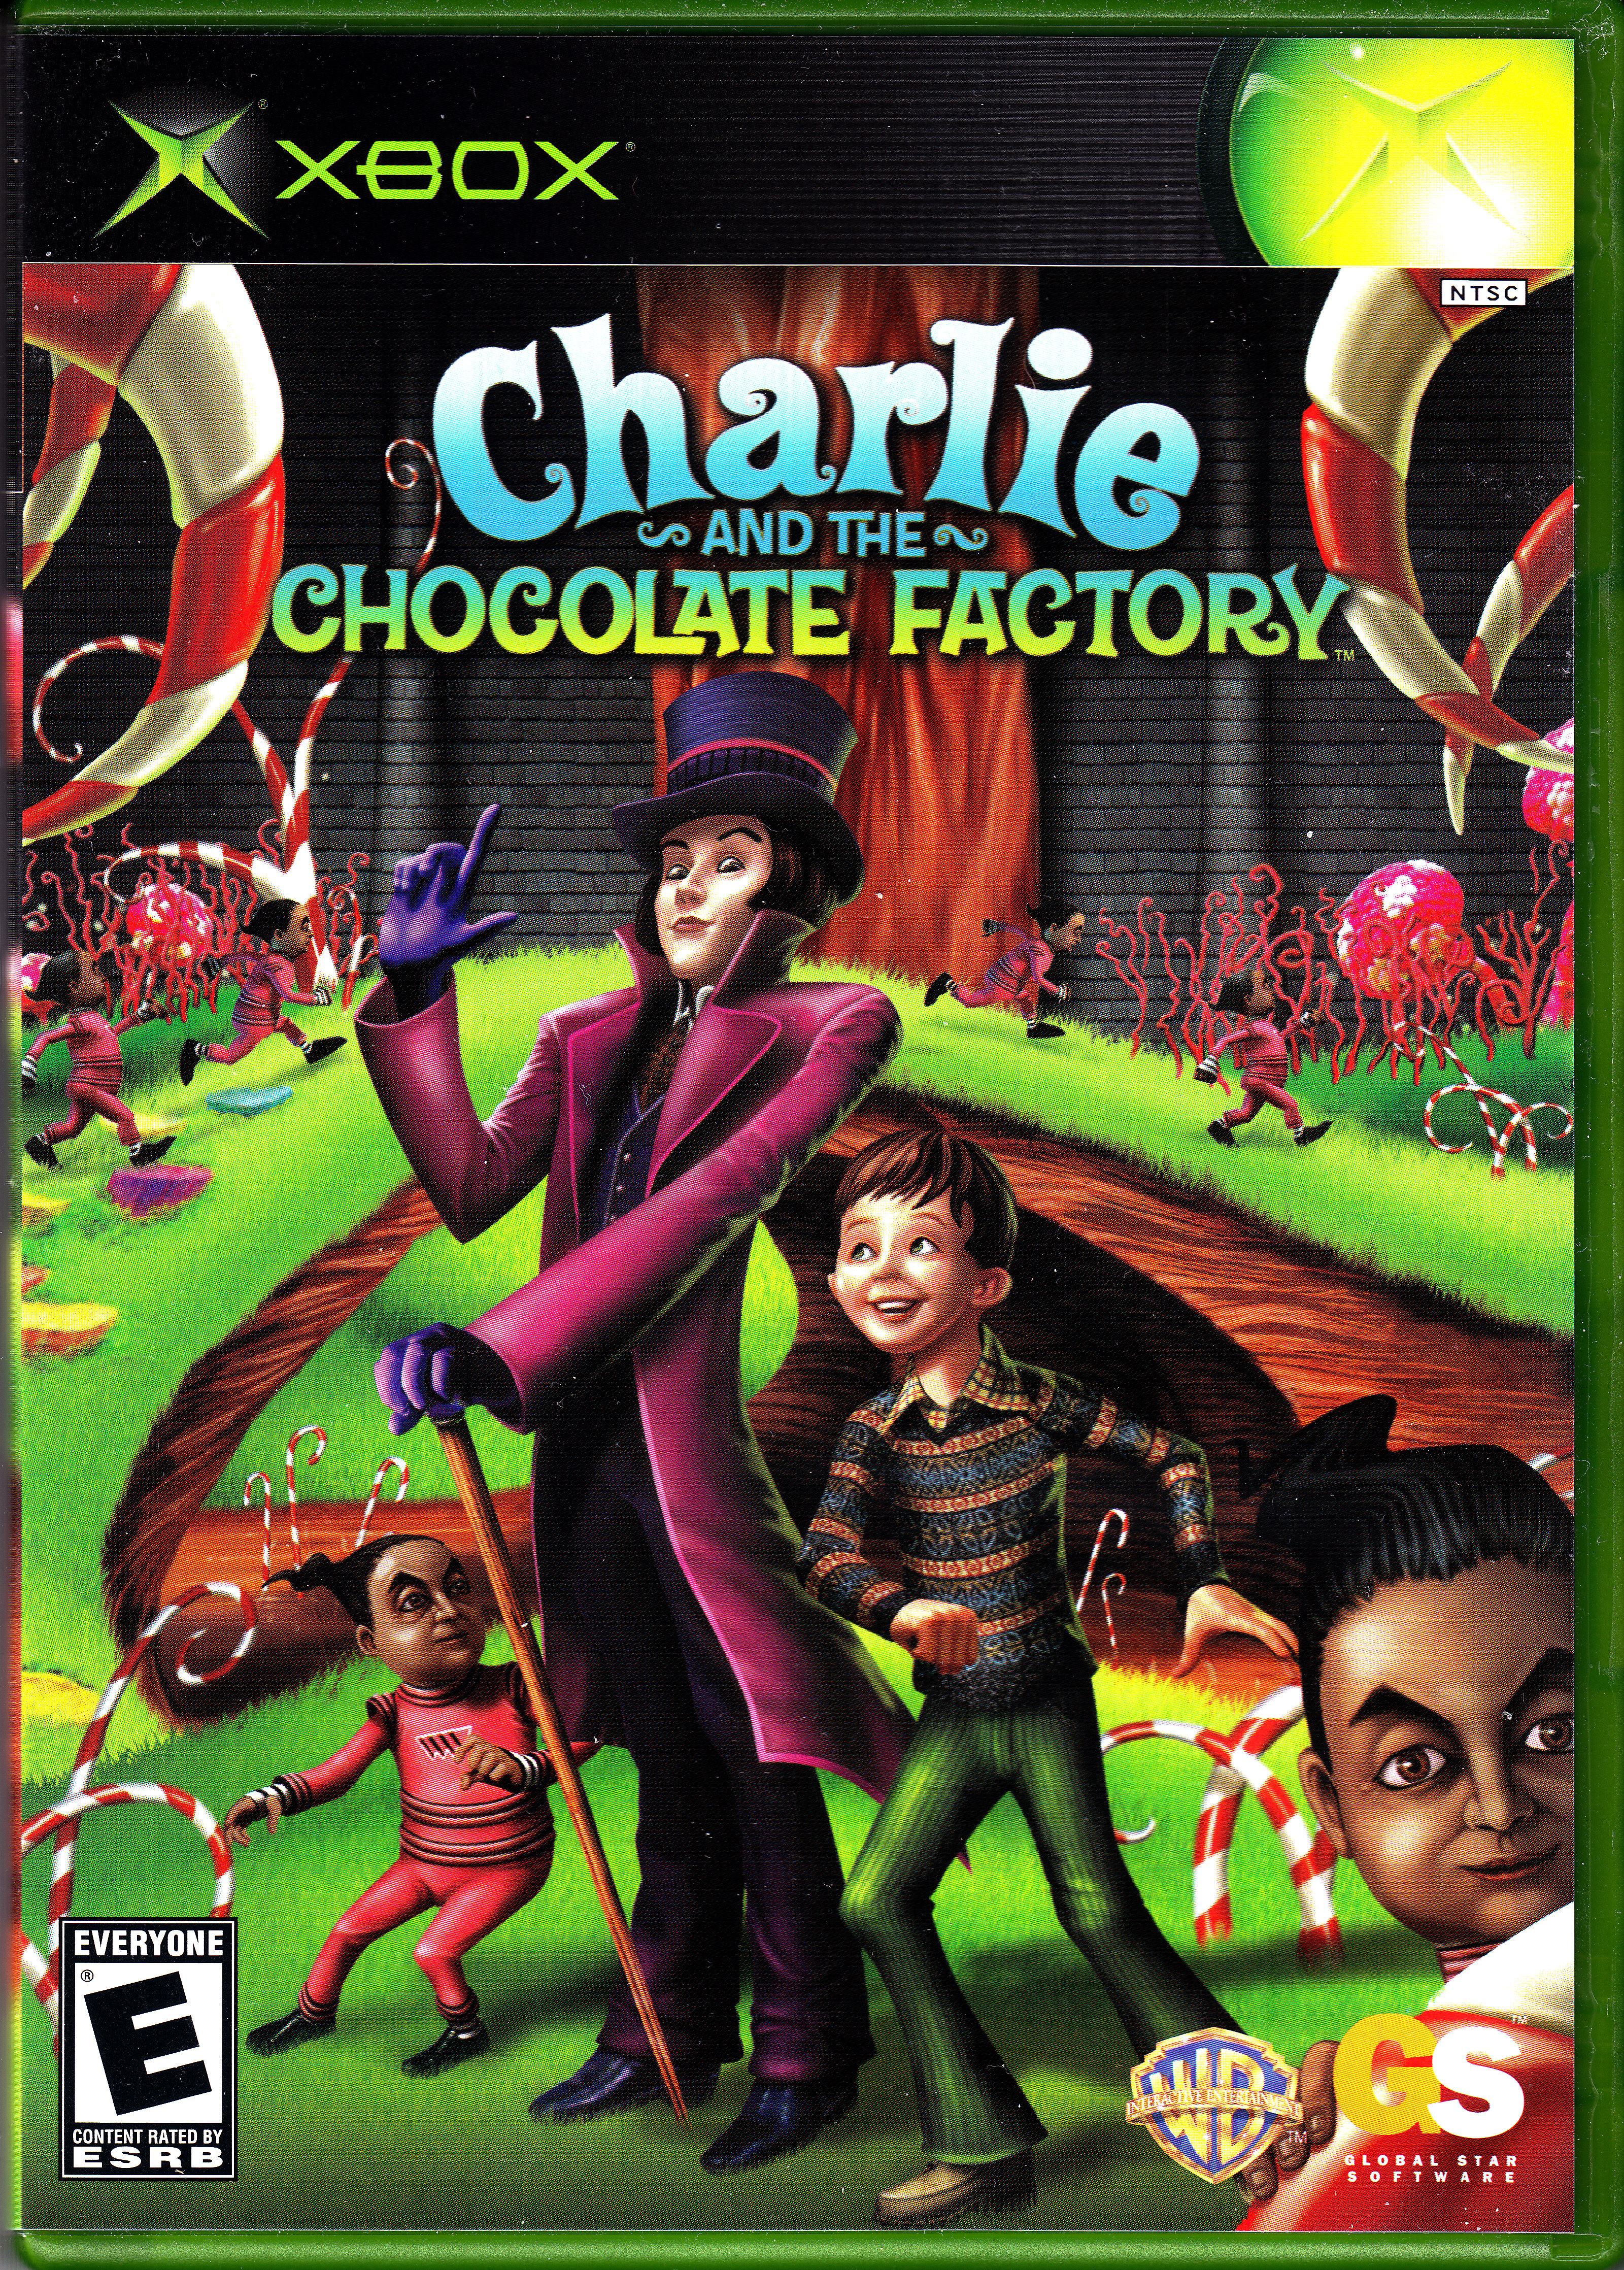 ... Xbox Charlie and the Chocolate Factory Front Cover.jpg ...